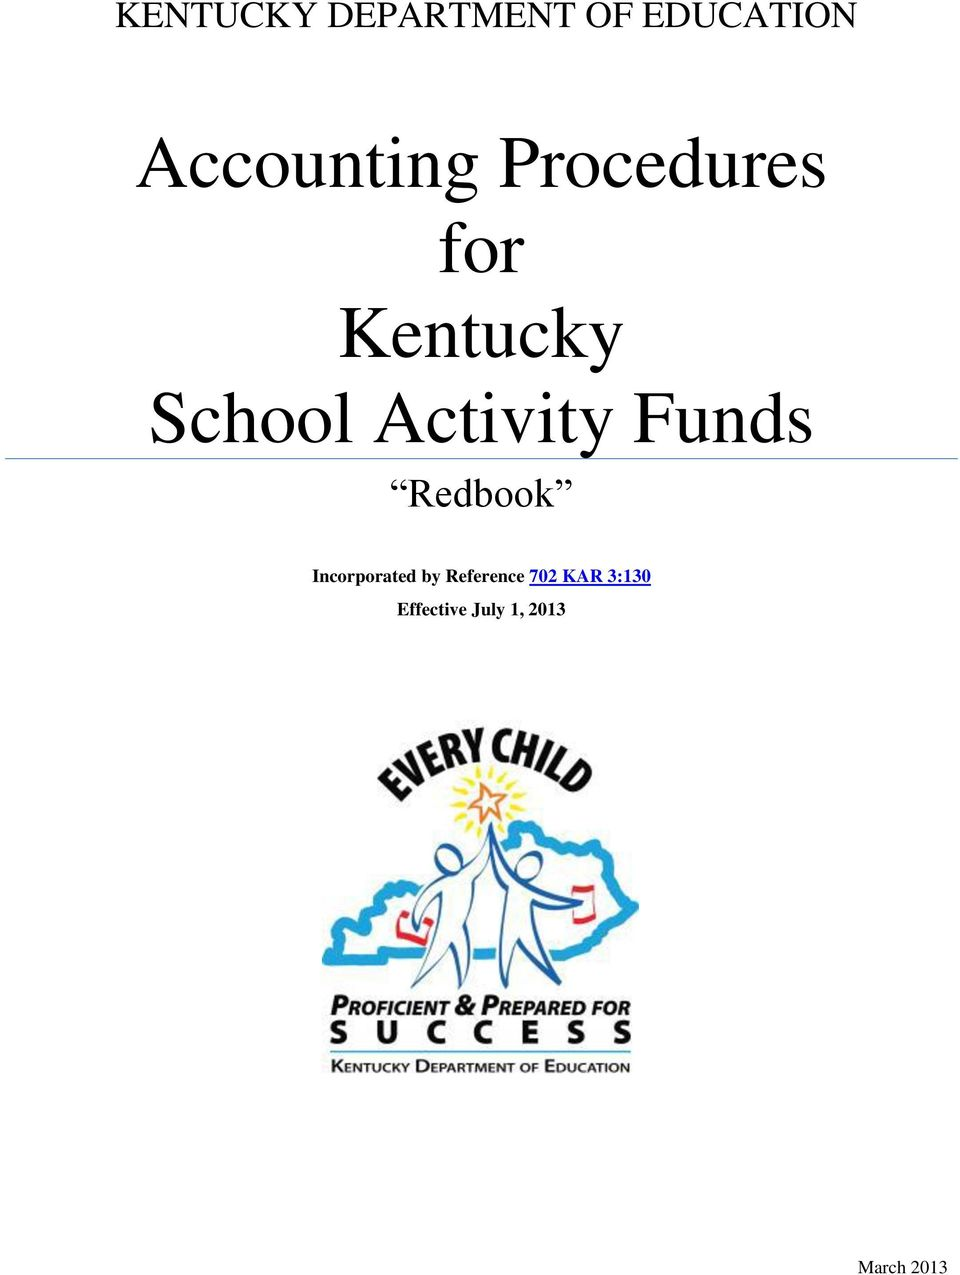 School Activity Funds Redbook